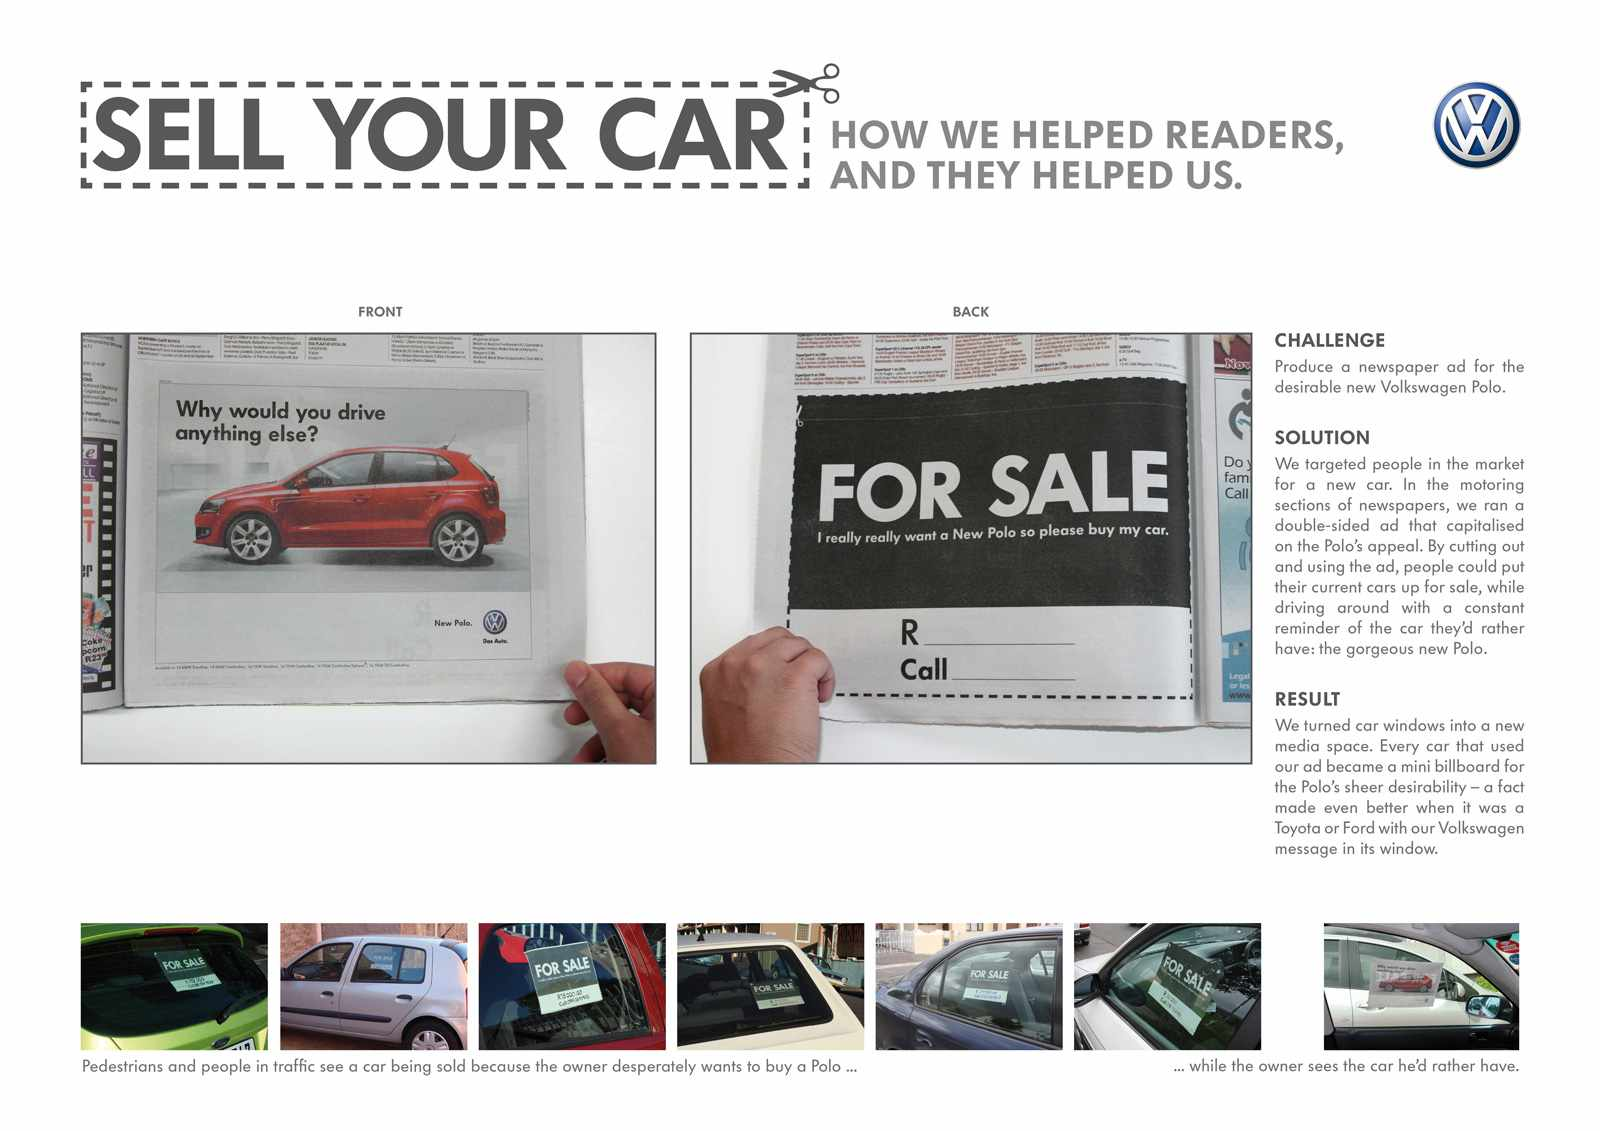 Dorable Sell Your Old Car Pattern - Classic Cars Ideas - boiq.info